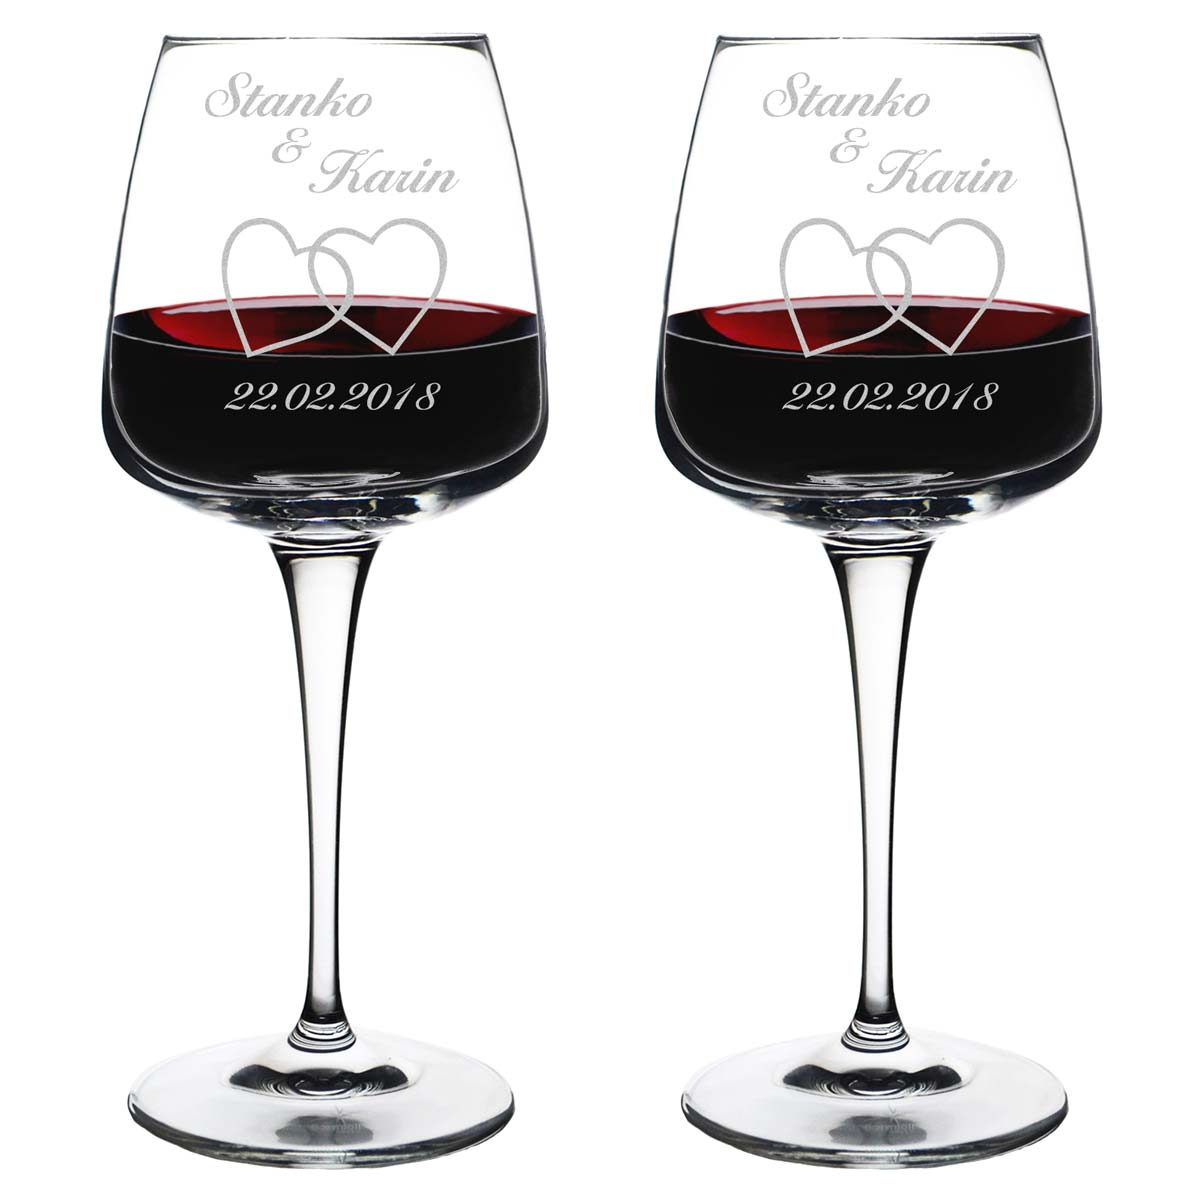 2 copas de vino con boda grabado personalizada regalo copa de vino ebay. Black Bedroom Furniture Sets. Home Design Ideas